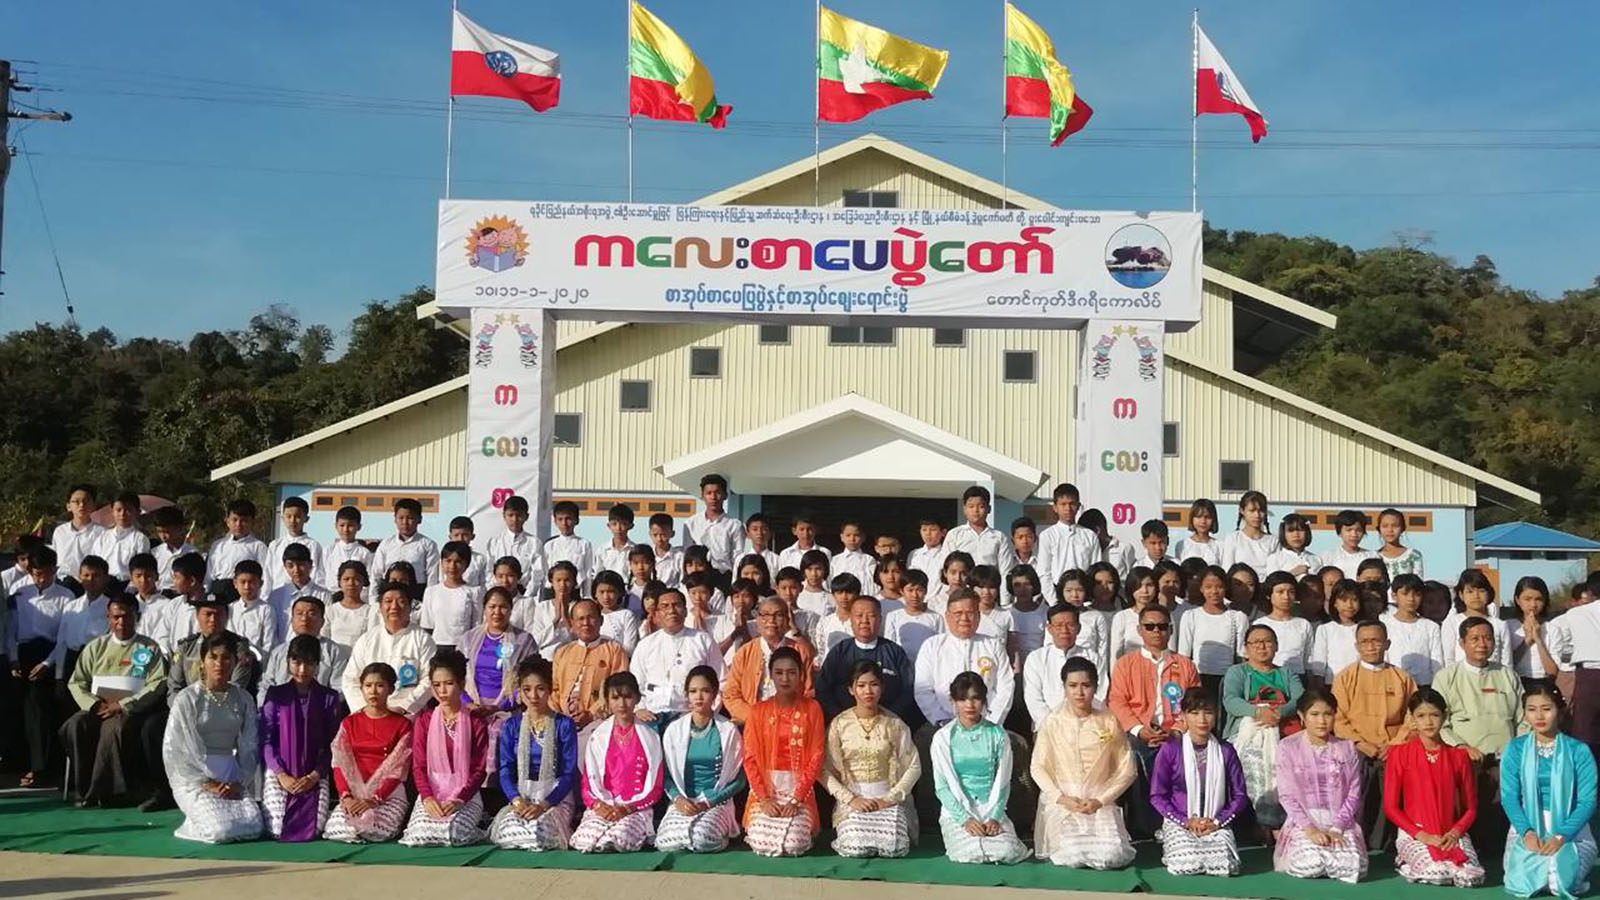 Rakhine State Chief Minister U Nyi Pu, Deputy Minister U Aung Hla Tun, and officials pose for a group photo at the opening ceremony of Children Literary Festival in Taungup, Rakhine State.Photo: District IPRD